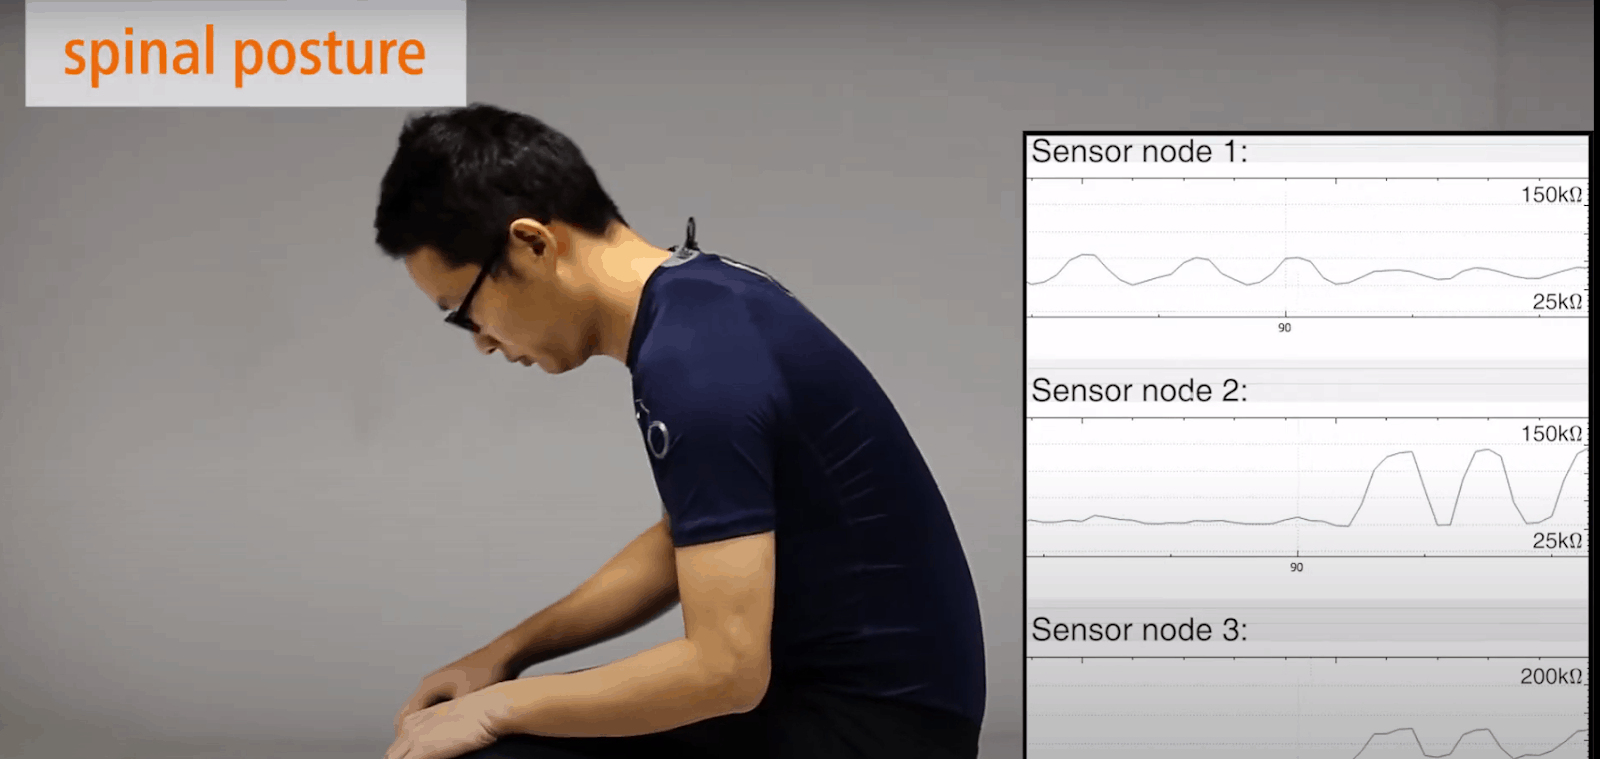 Spinal posture monitoring